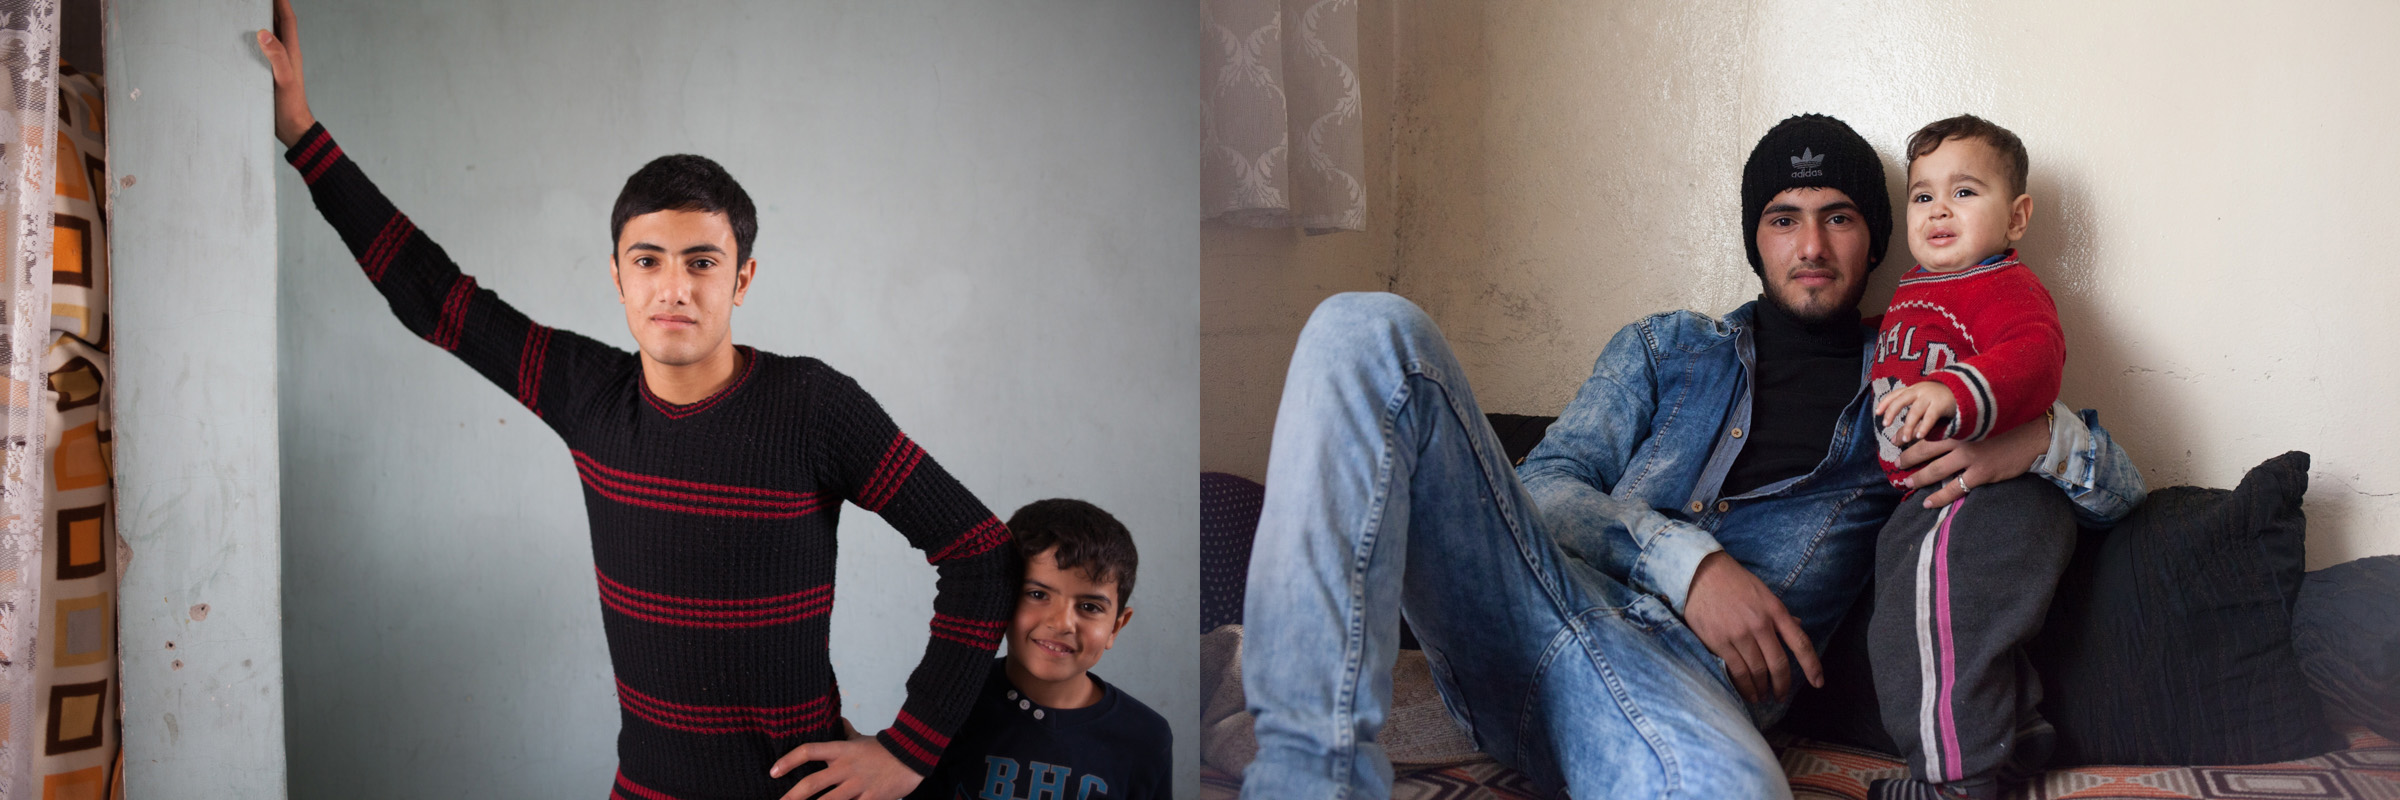 Muhammed and Ibu Syrian Refugee Boys in Gaziantep Turkey Emily Troutman Aidworks